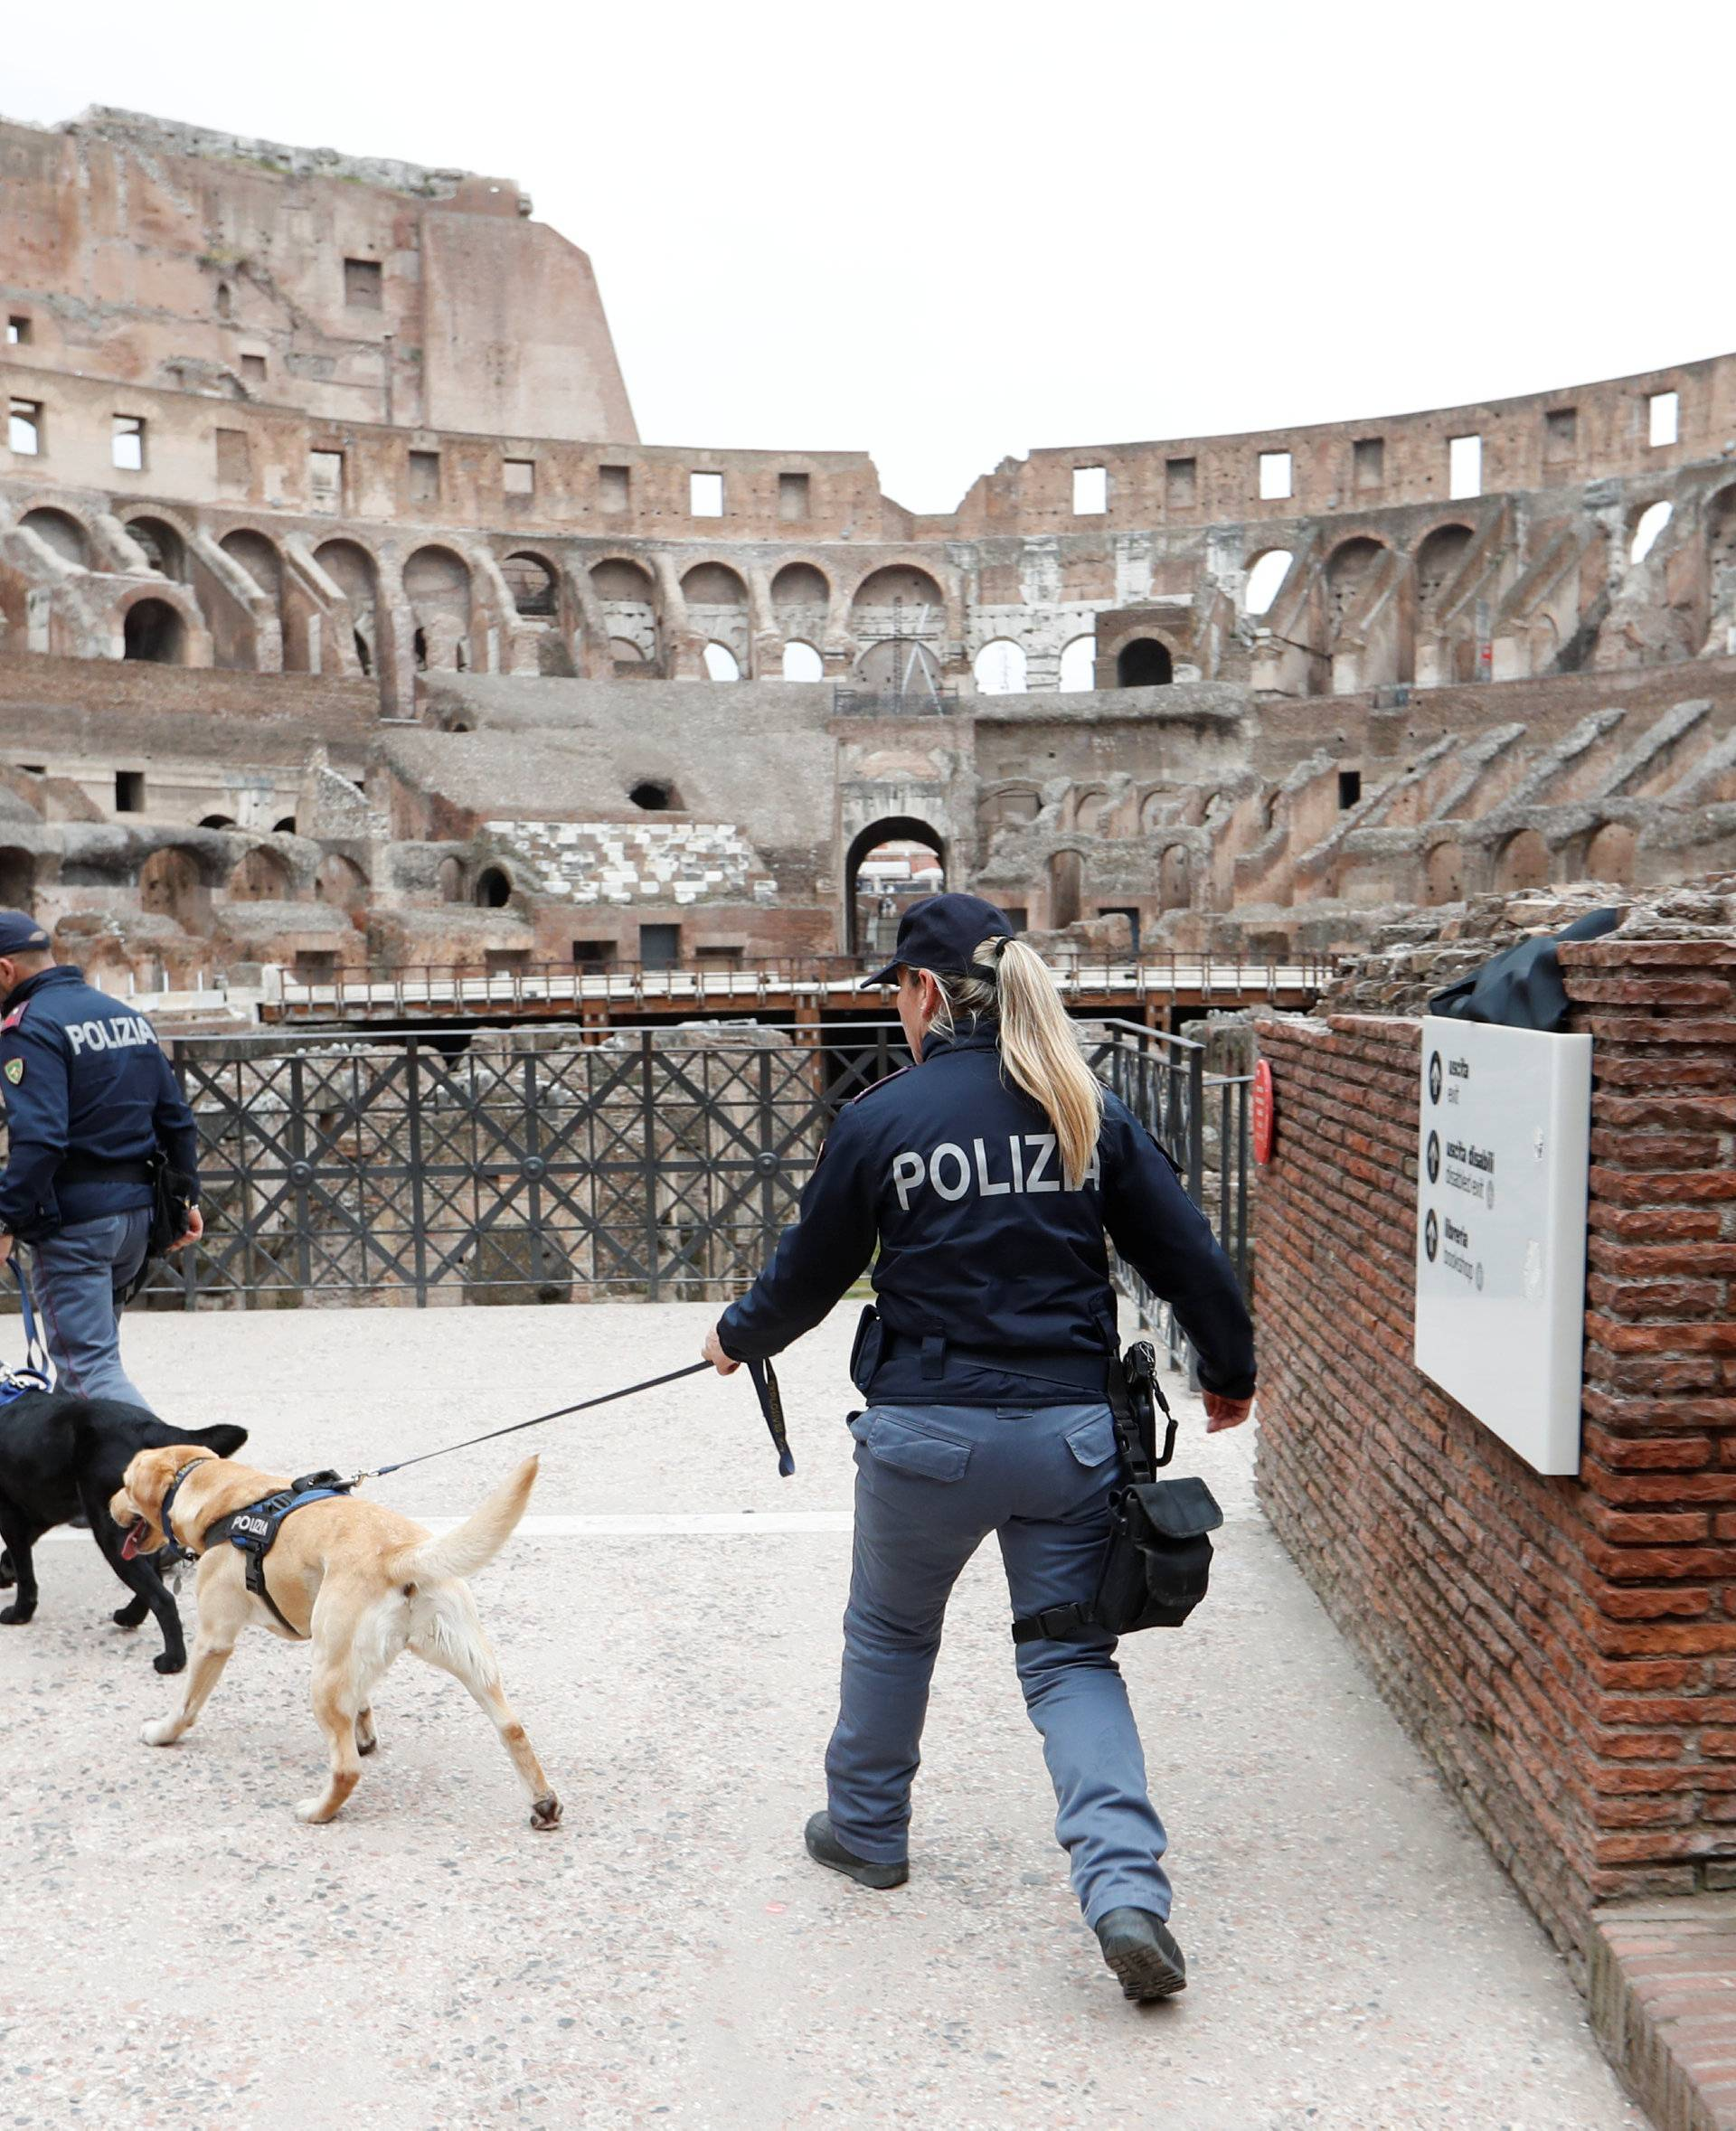 Security patrol with dogs inside the Colosseum before the Via Crucis (Way of the Cross) procession during Good Friday celebrations in Rome